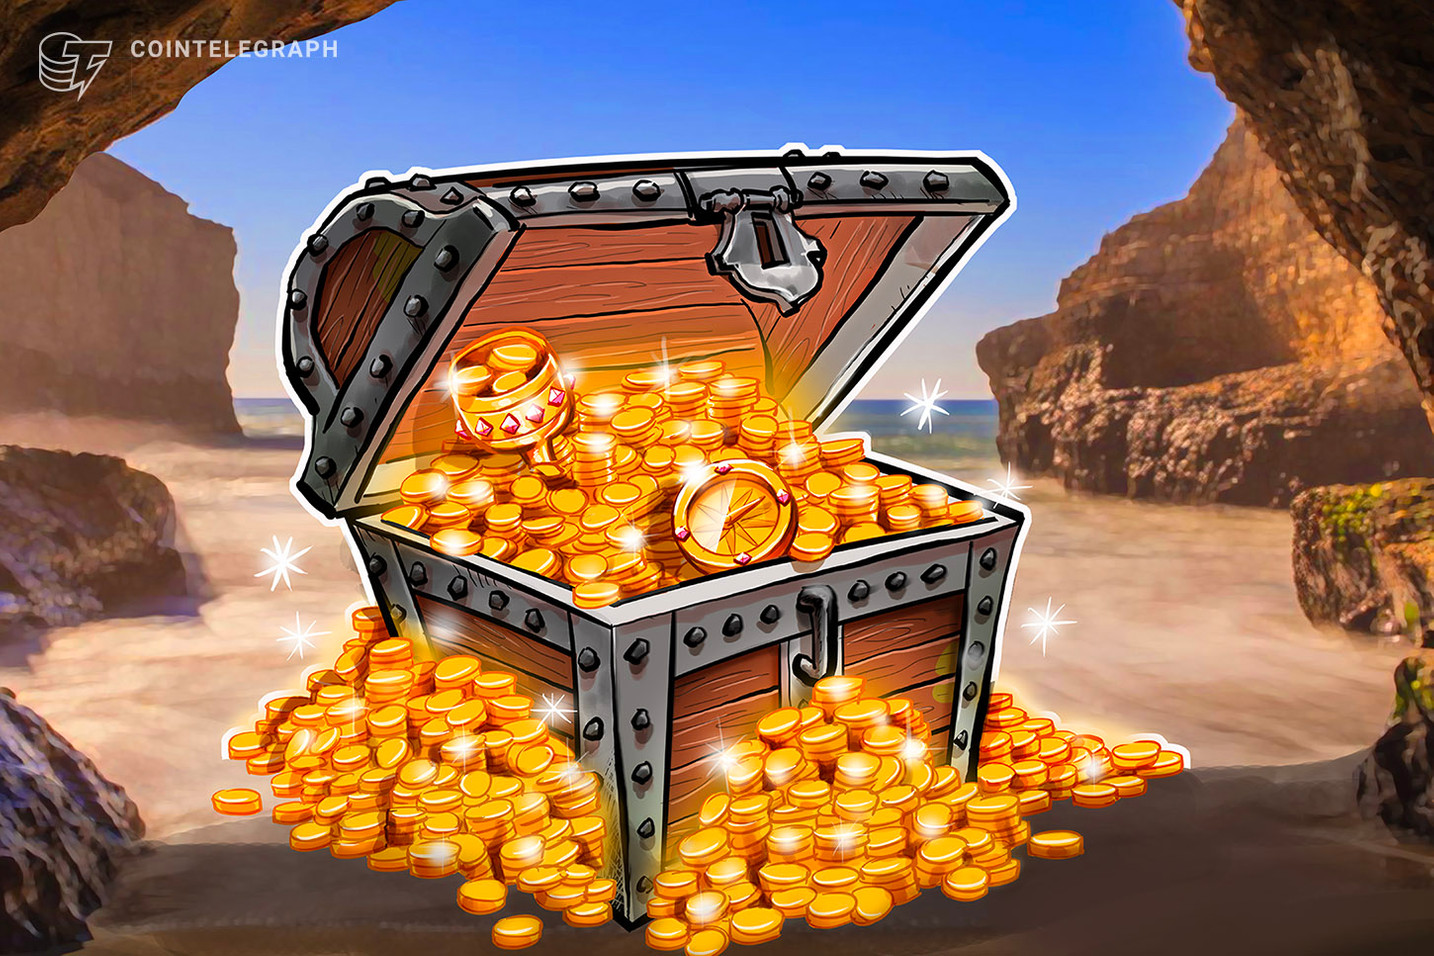 Bahamian Firm to Boost Local Economy with Blockchain-Based Sunken Treasure Project